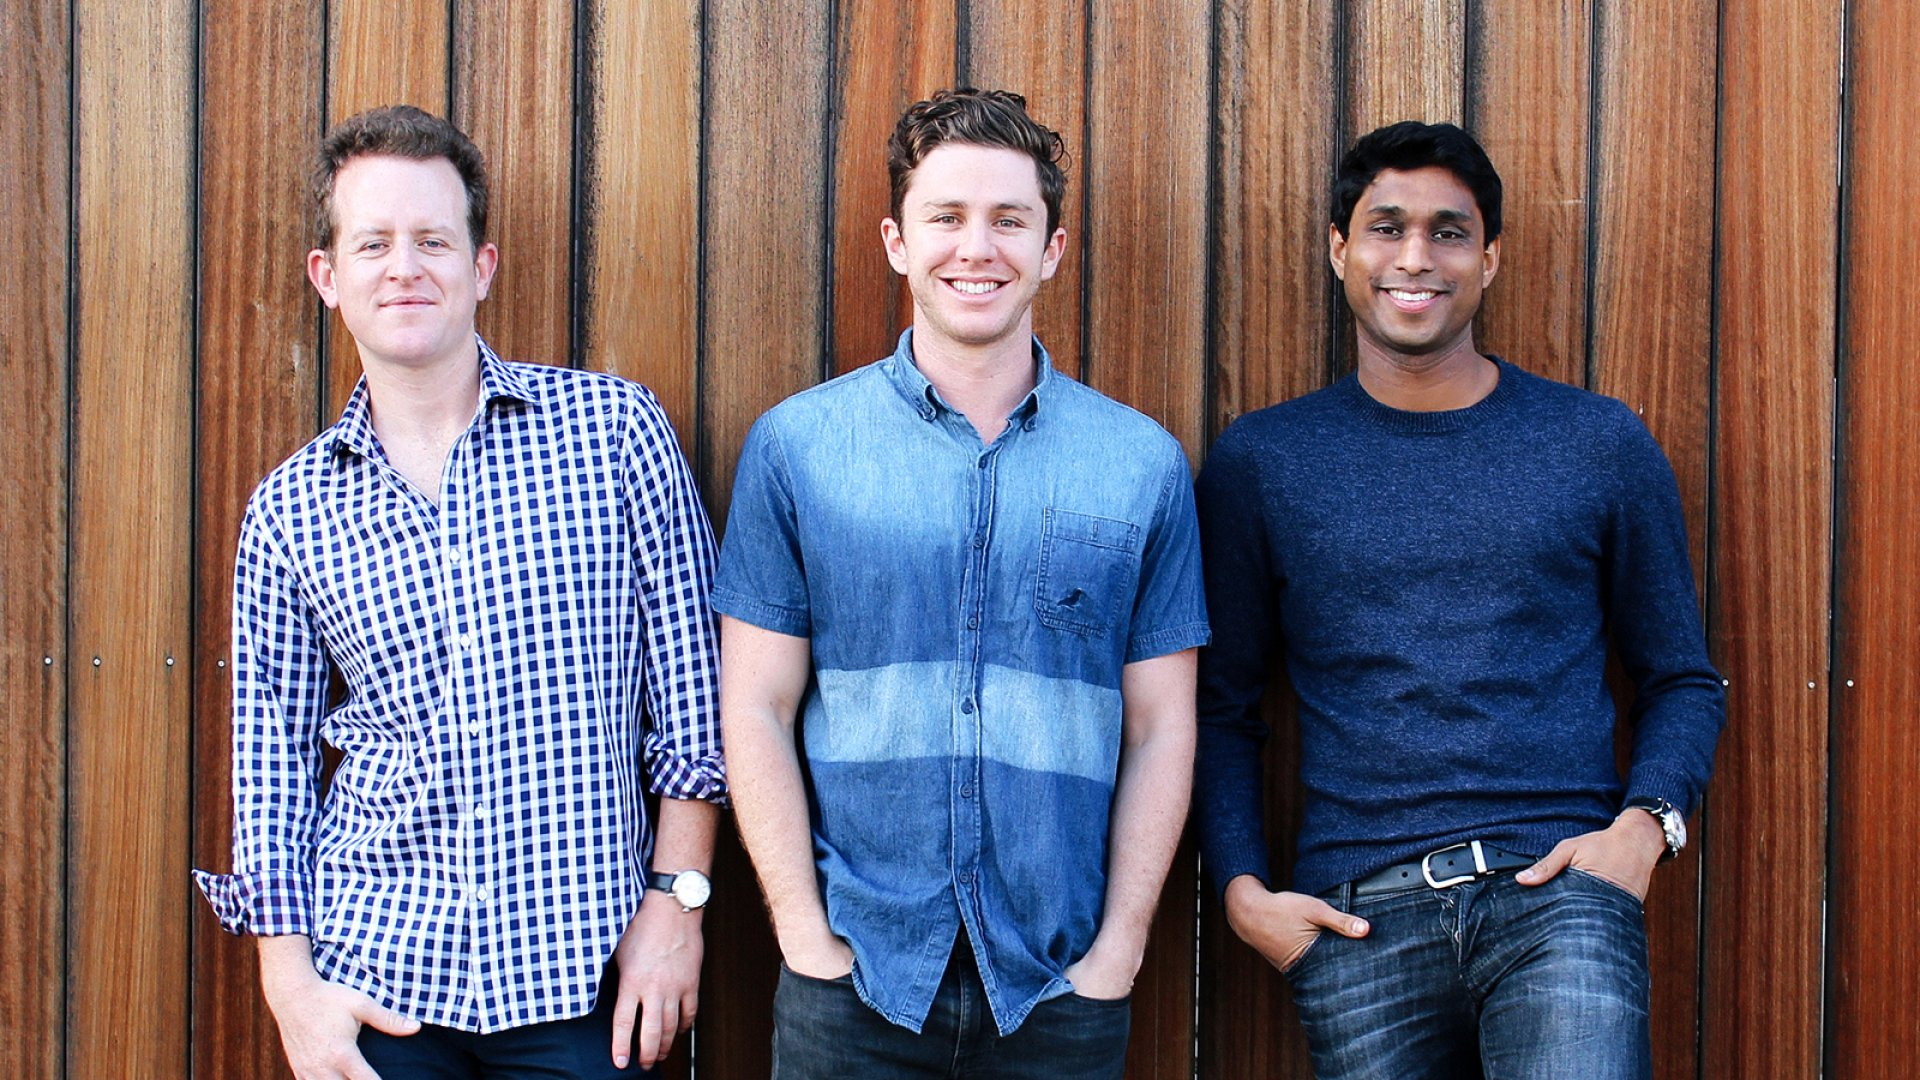 Kairos partners Ryan Bloomer, Alex Fiance, and Ankur Jain. Kairos will be investing in young startups that are proposing solutions to global challenges.